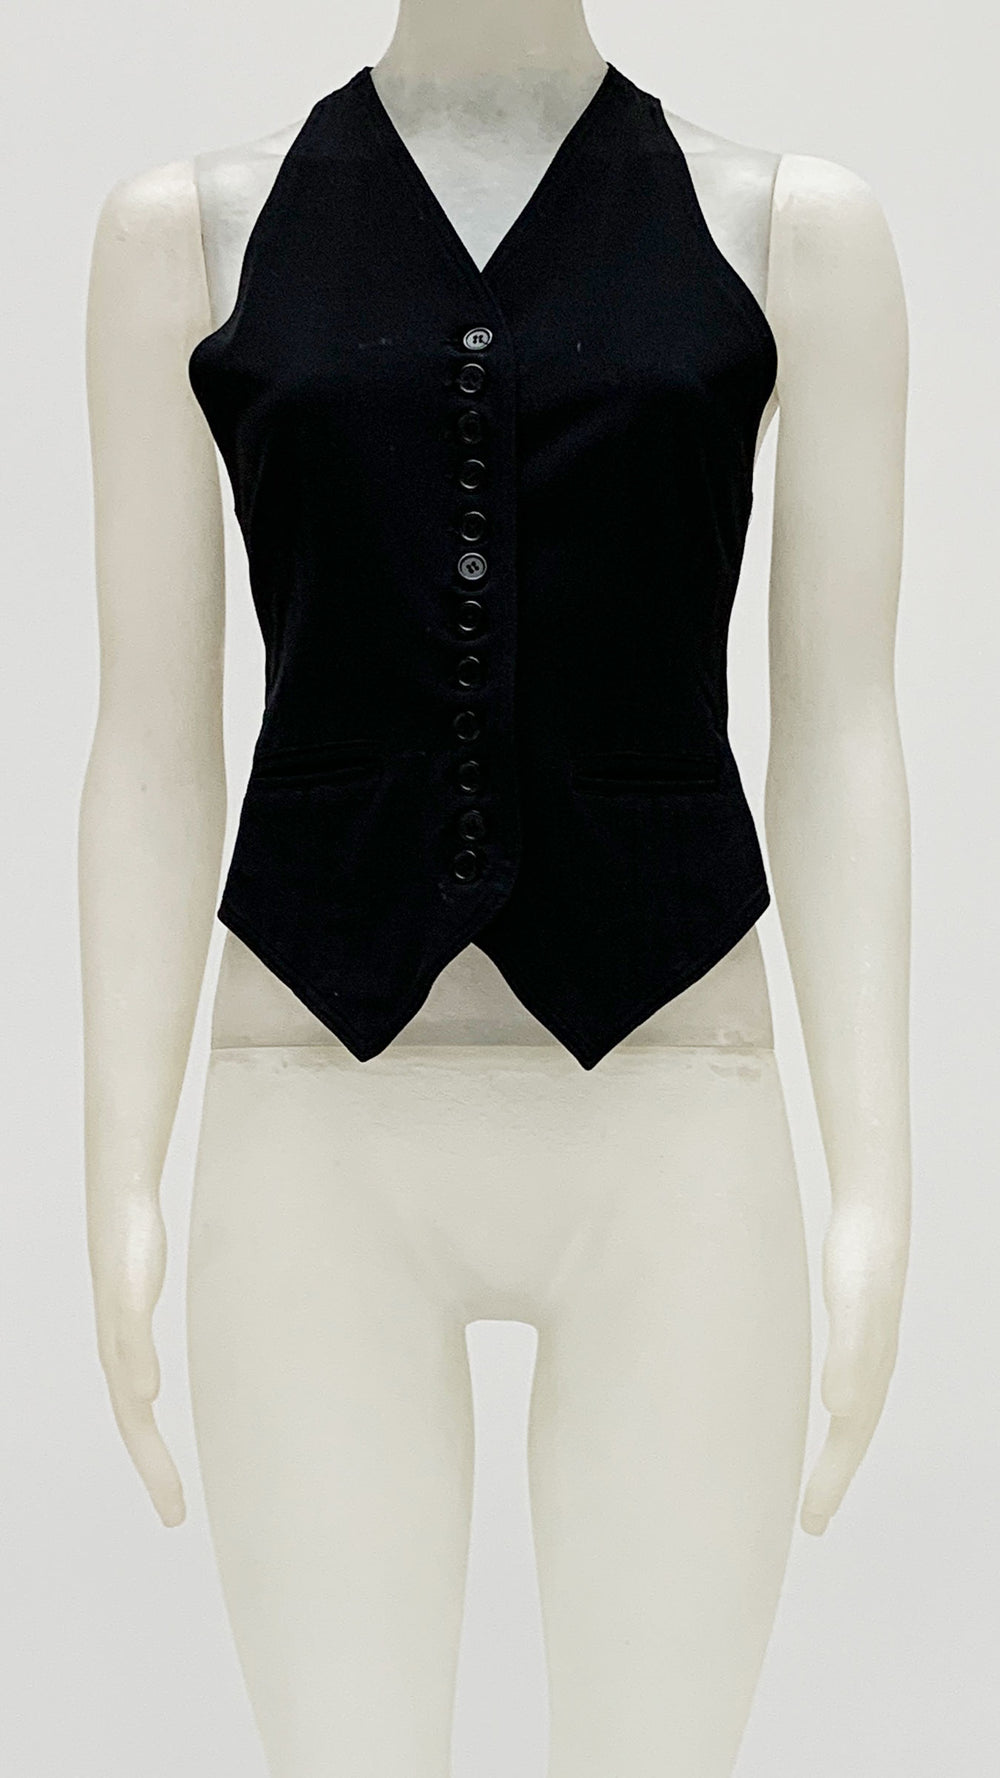 TAILORED BUTTON FRONT VEST - 1